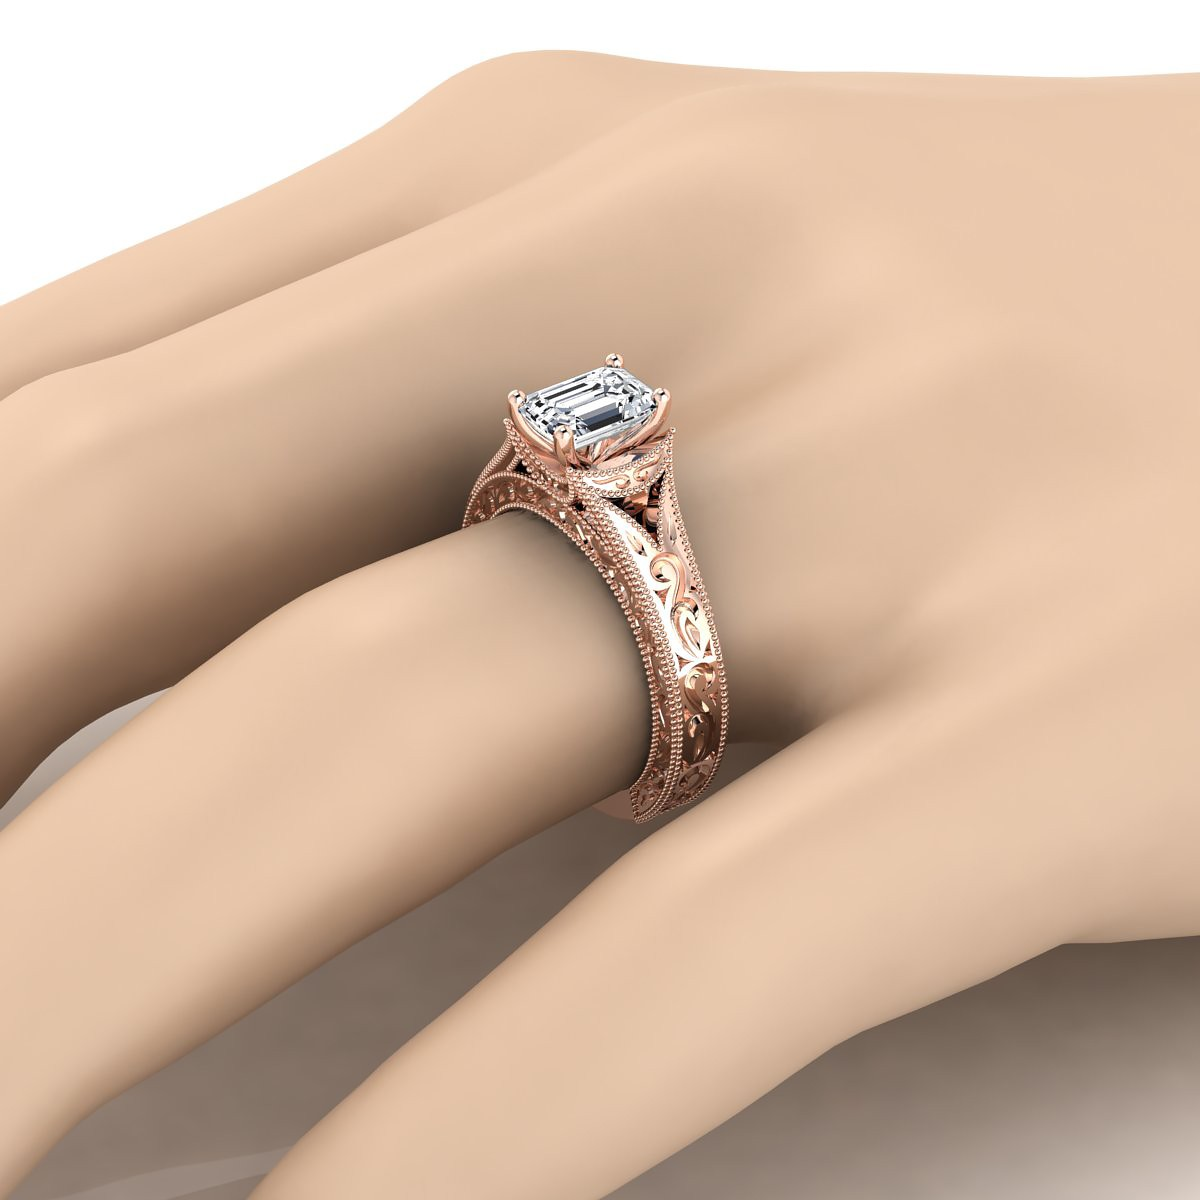 Emerald Cut Antique Inspired Engraved Diamond Engagement Ring With Millgrain Finish In 14k Rose Gold